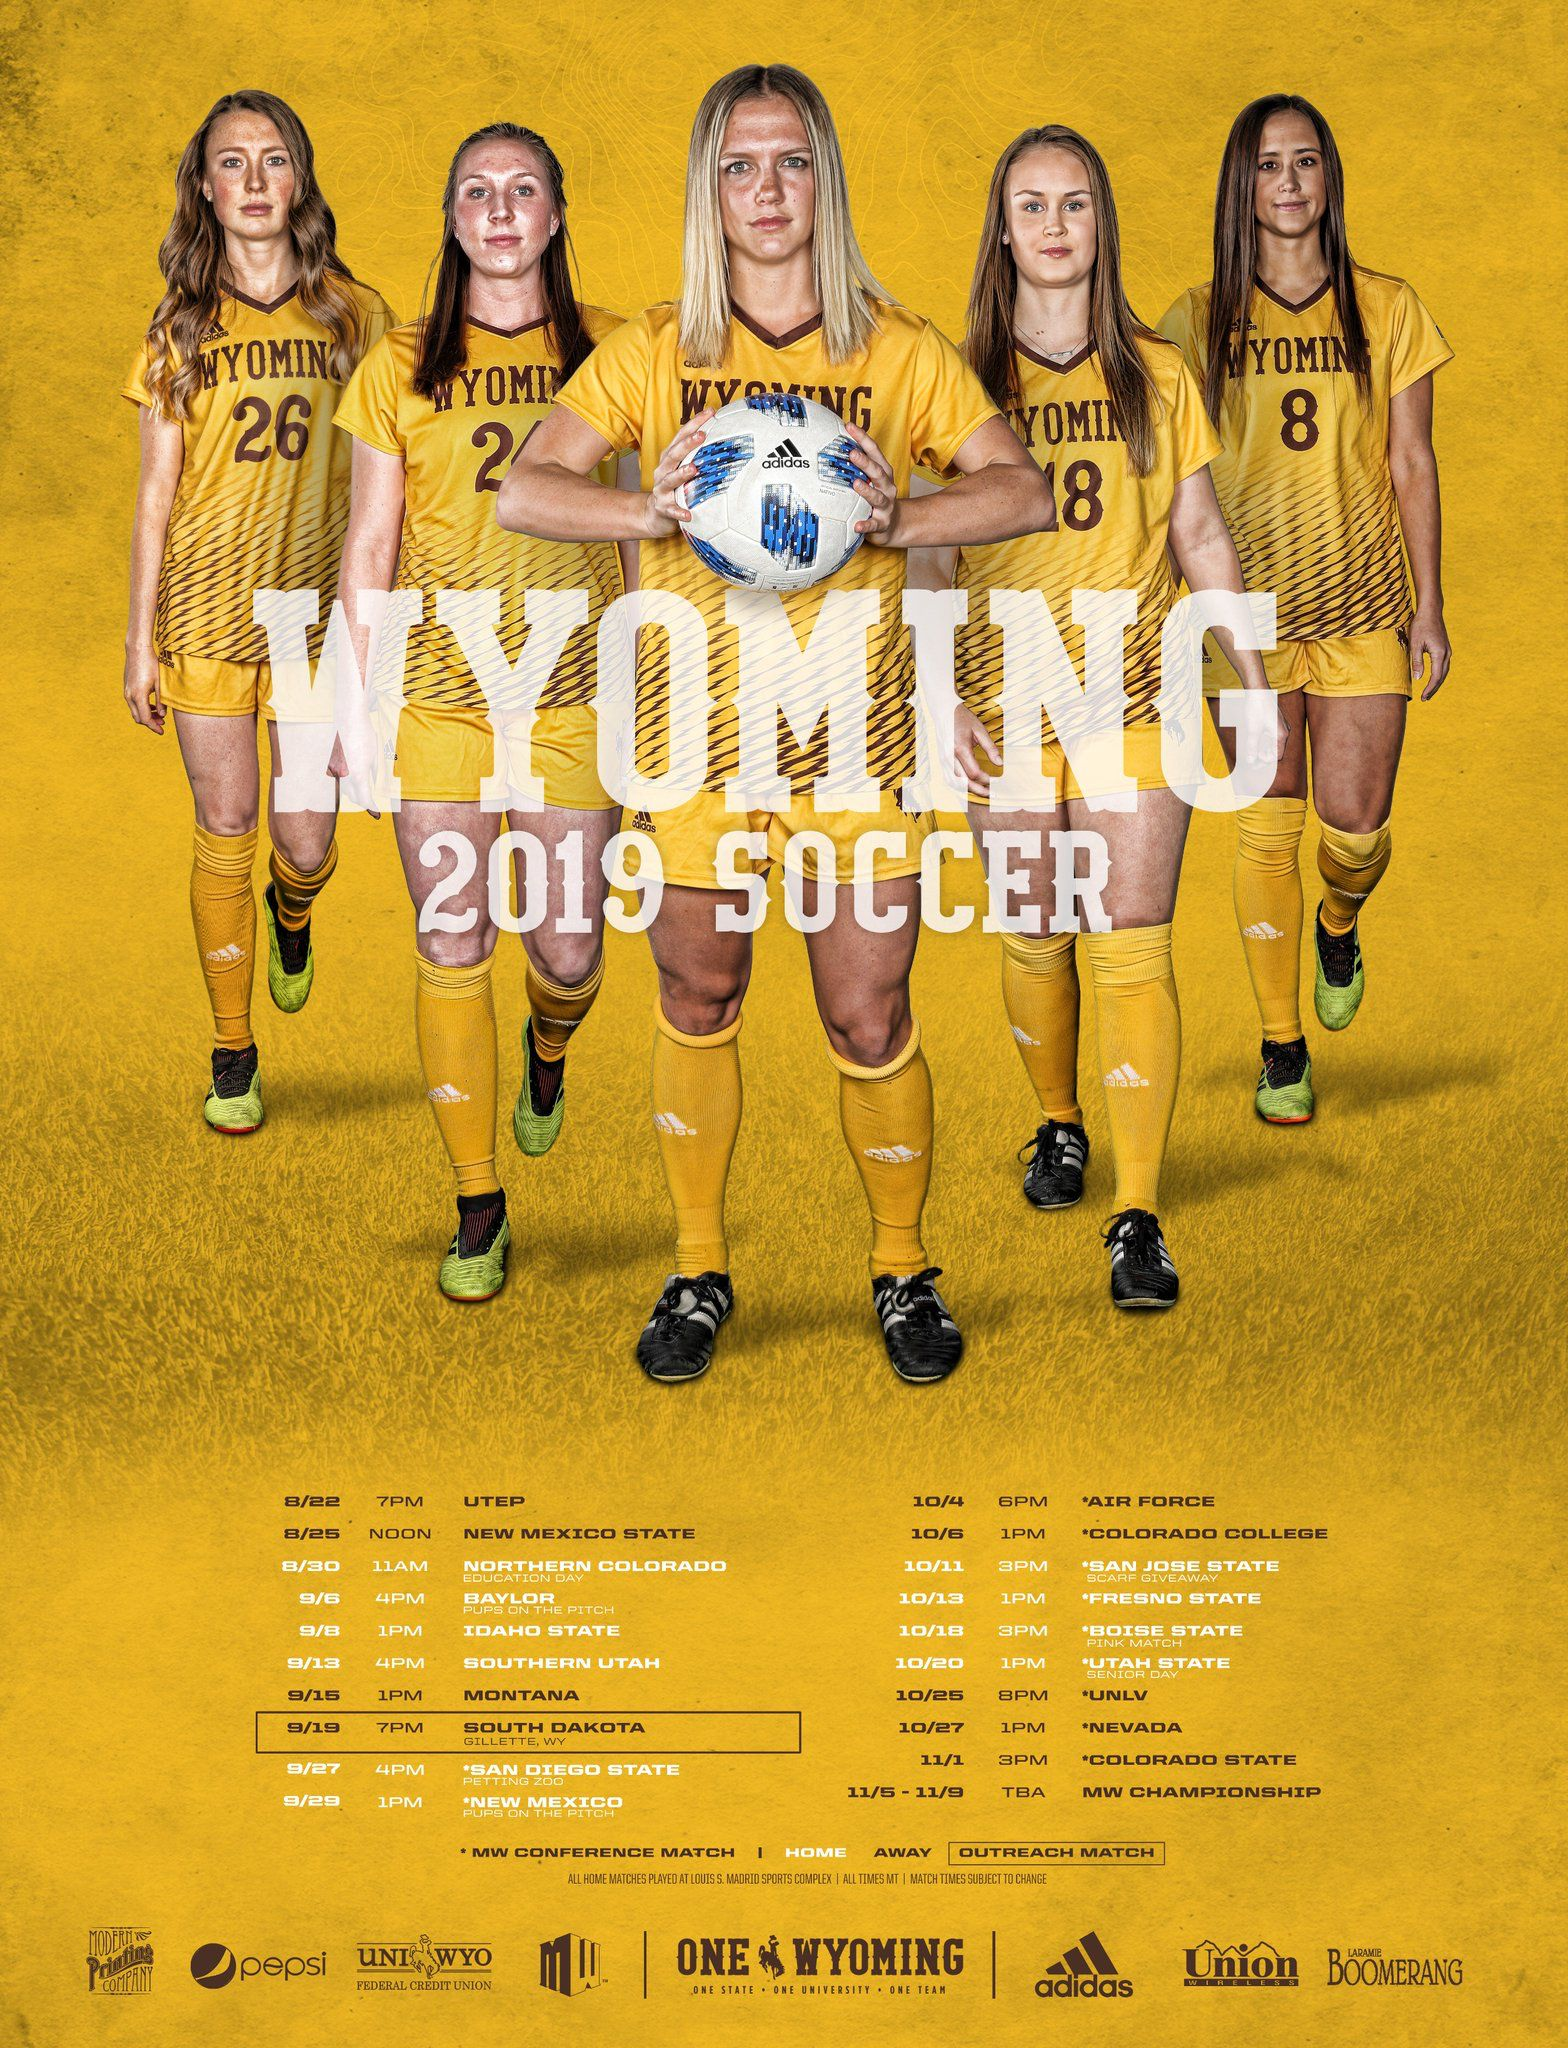 Pin By Alex Fishman On Sposters College Sports Graphics Sports Graphics Sports Design